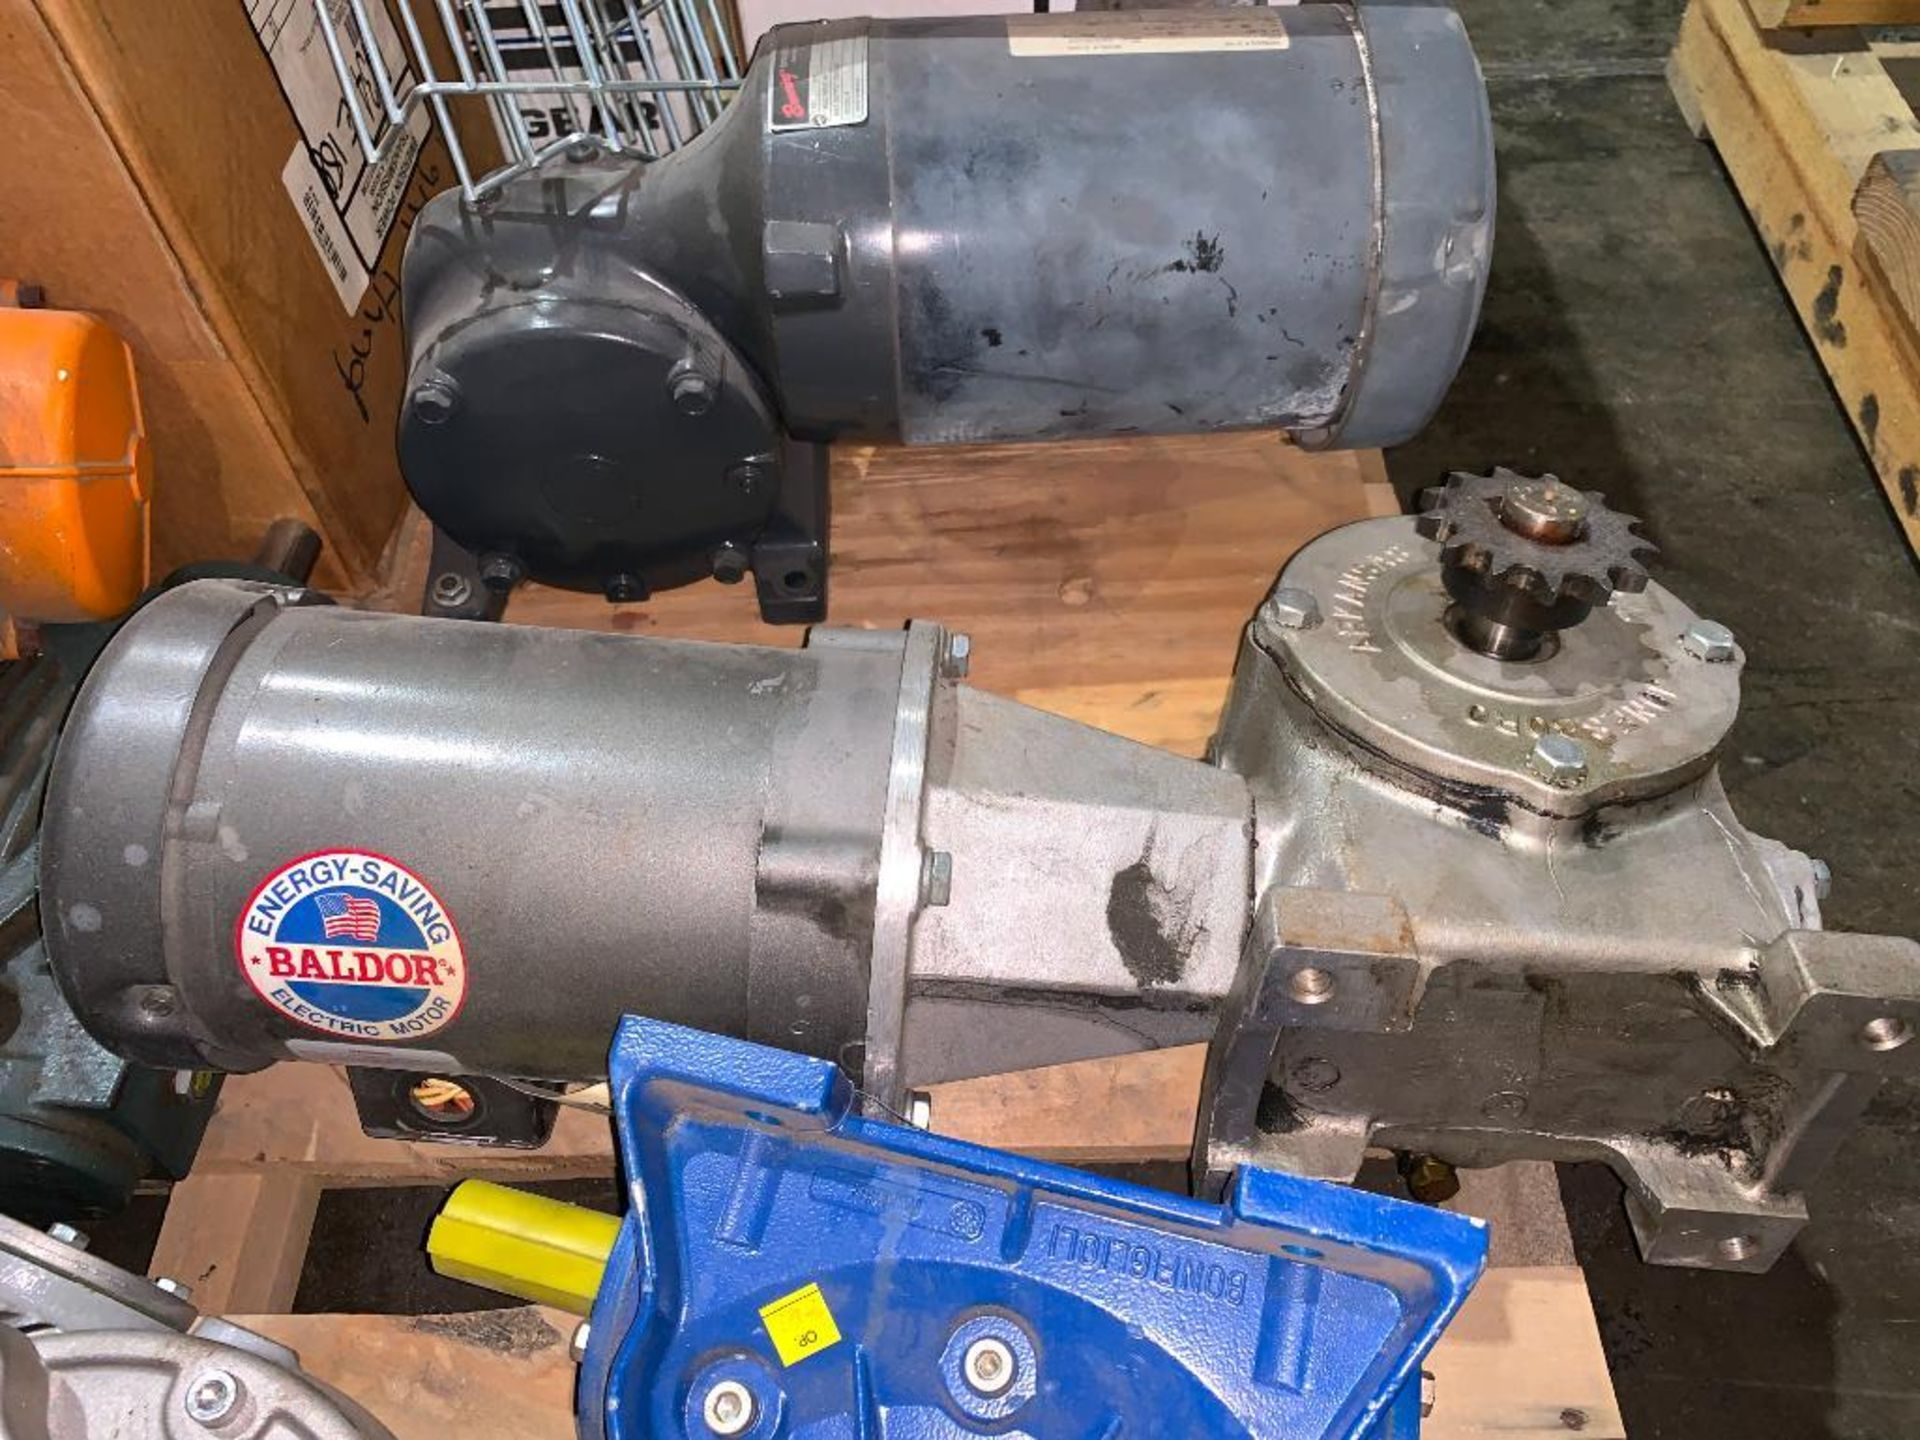 pallet of used motors and drives - Image 8 of 13